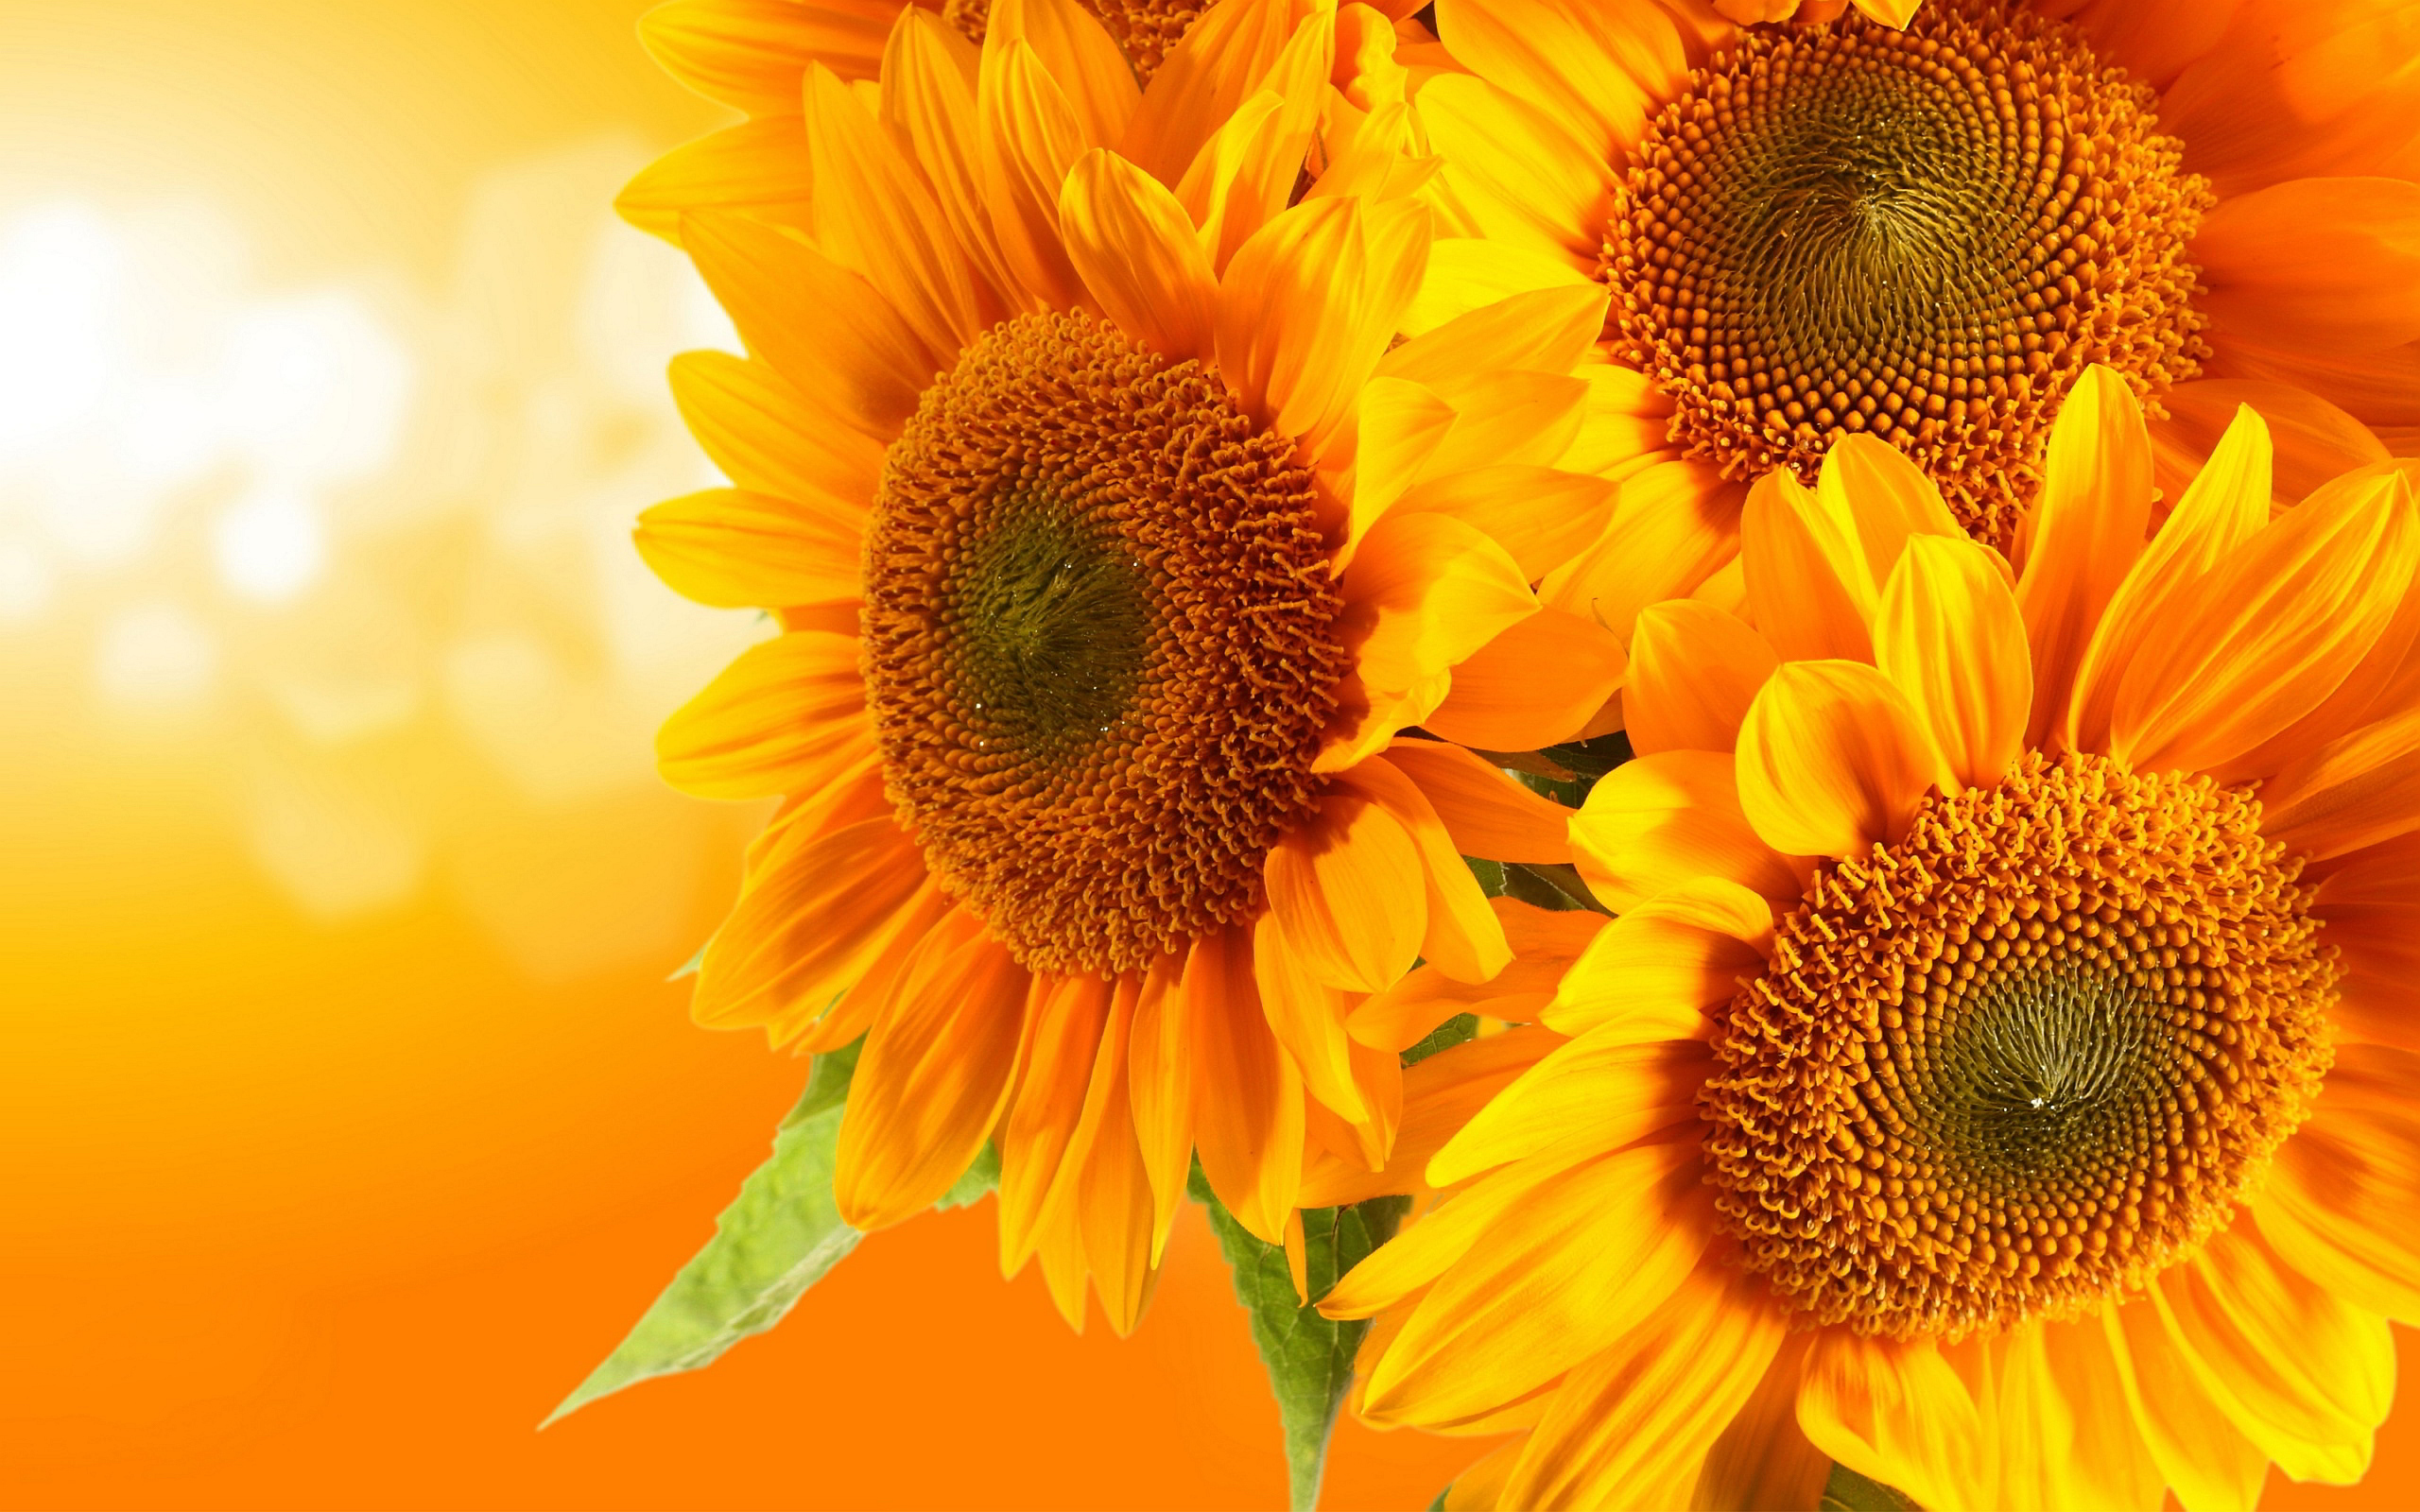 381 Sunflower HD Wallpapers | Backgrounds - Wallpaper Abyss